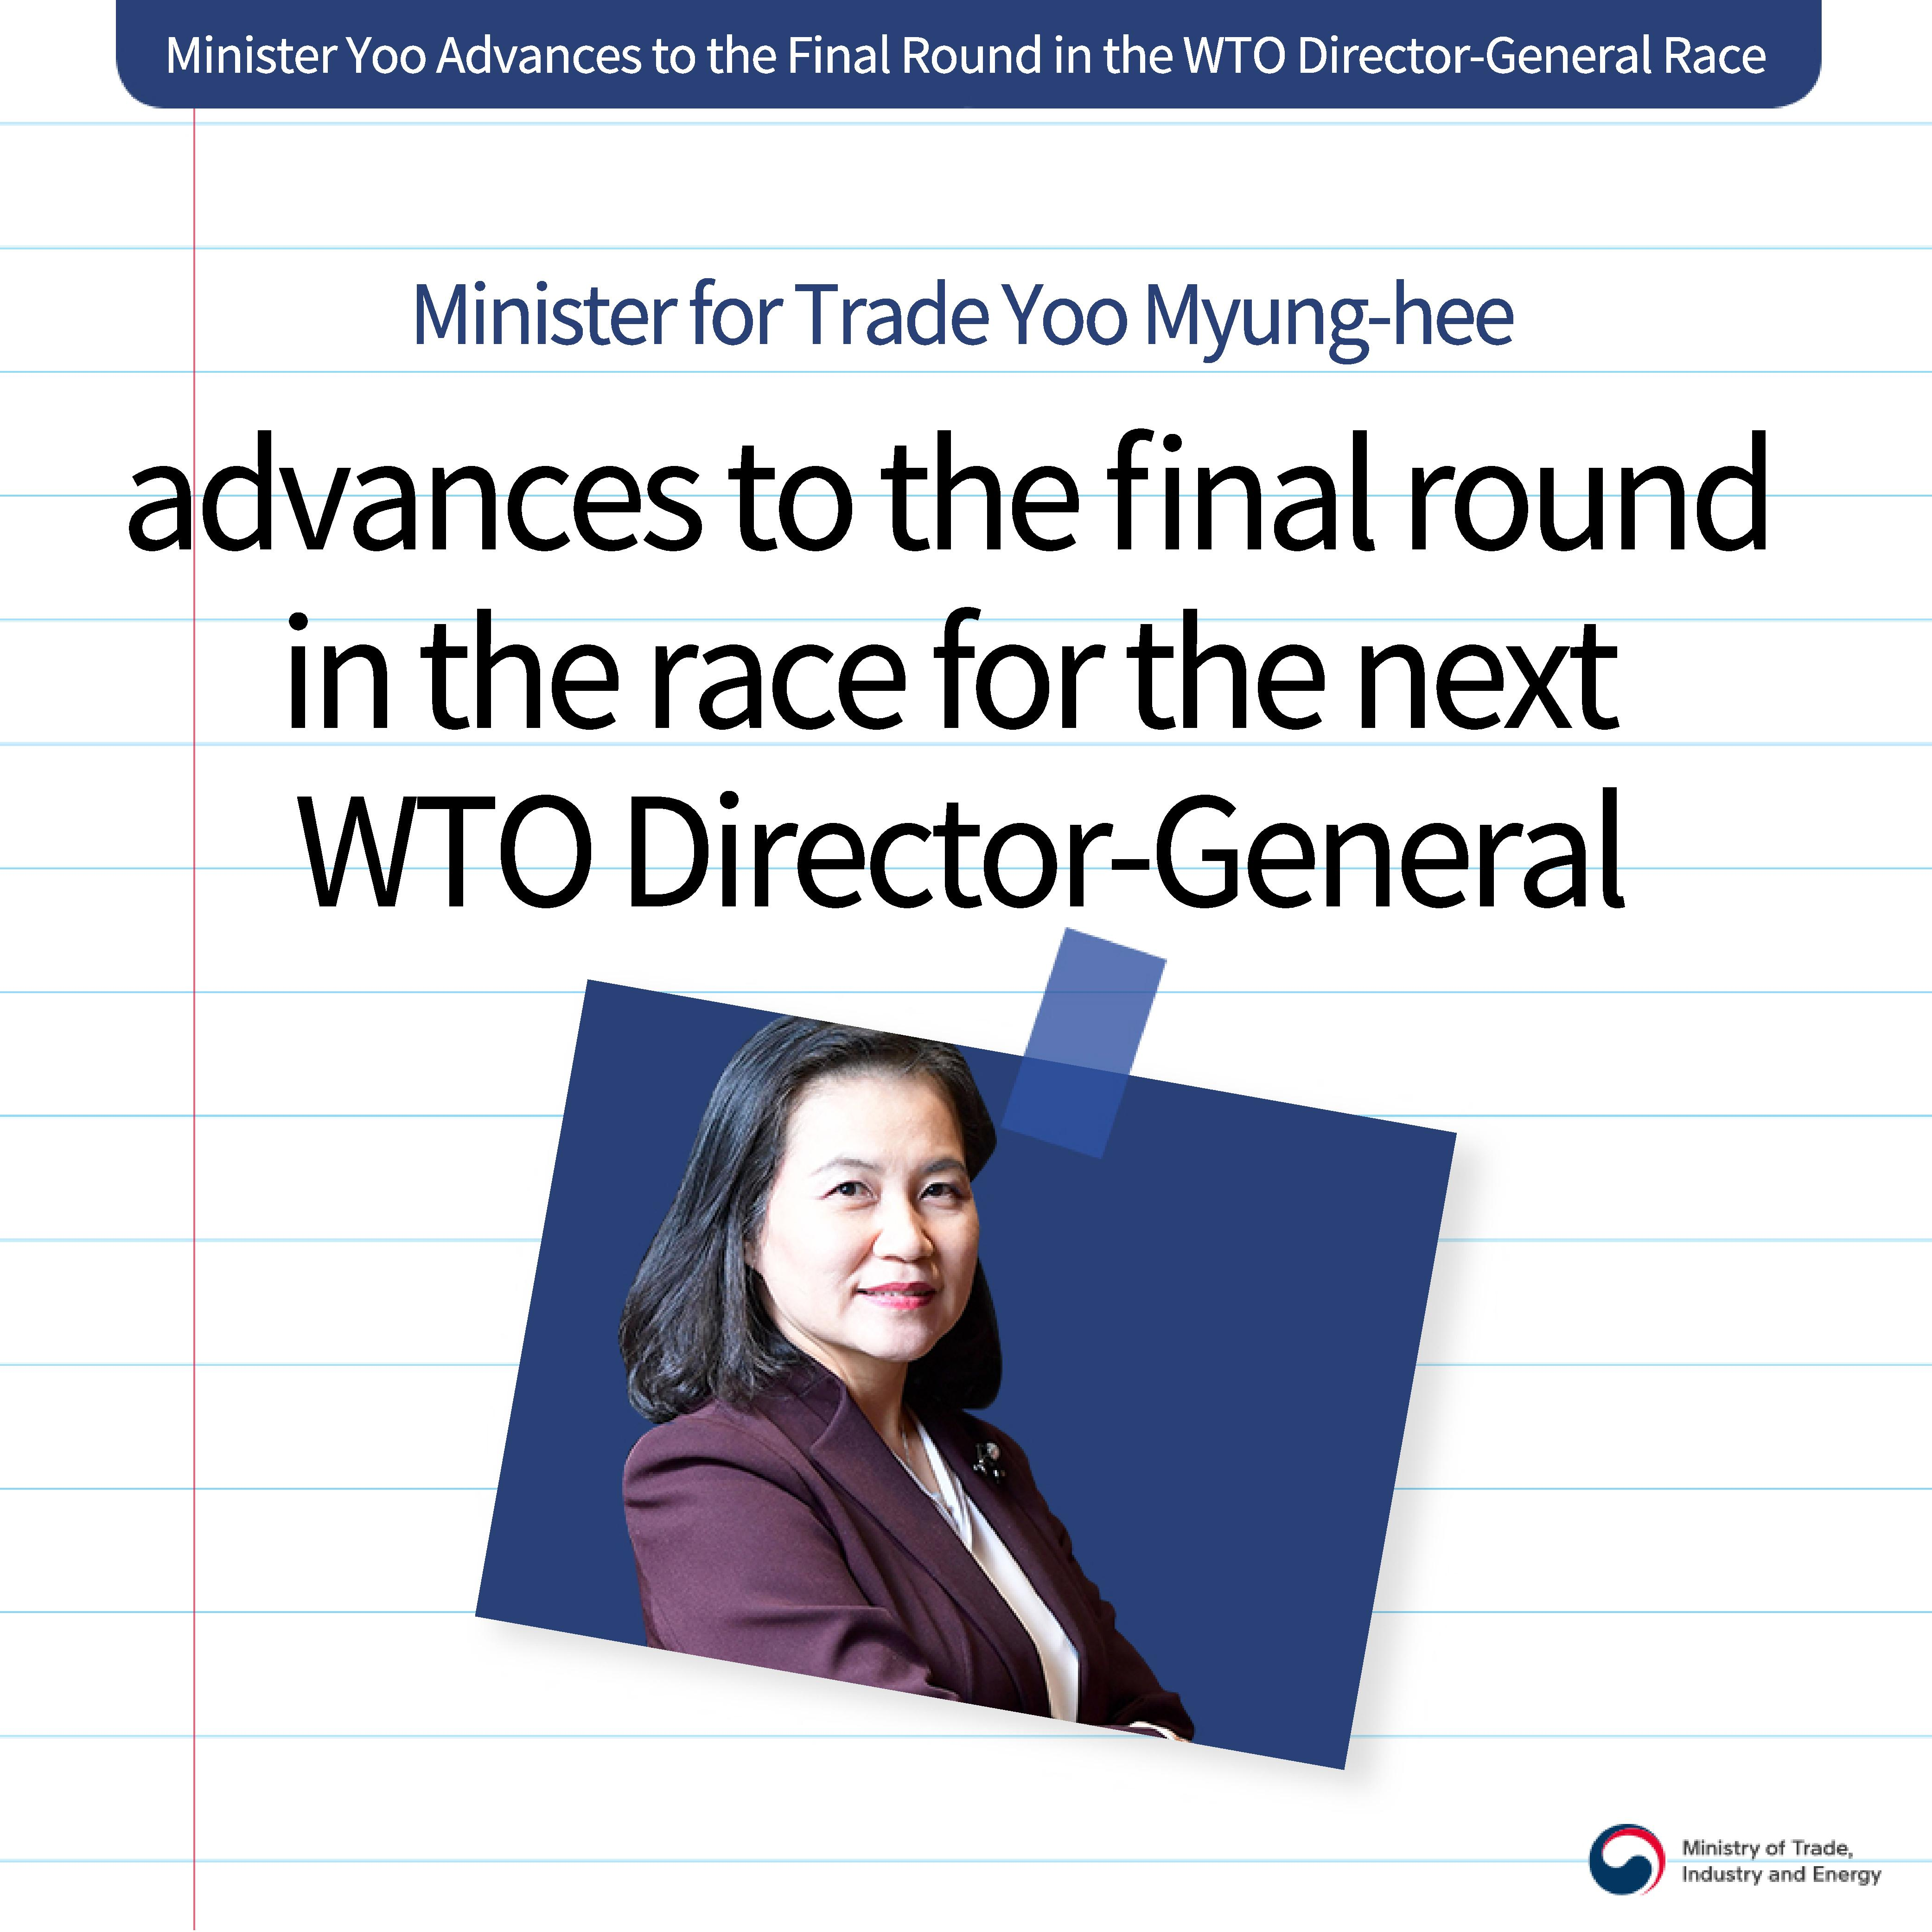 Trade Minister Yoo Myung-hee advances to the final round in the race for the next WTO DG Image 3